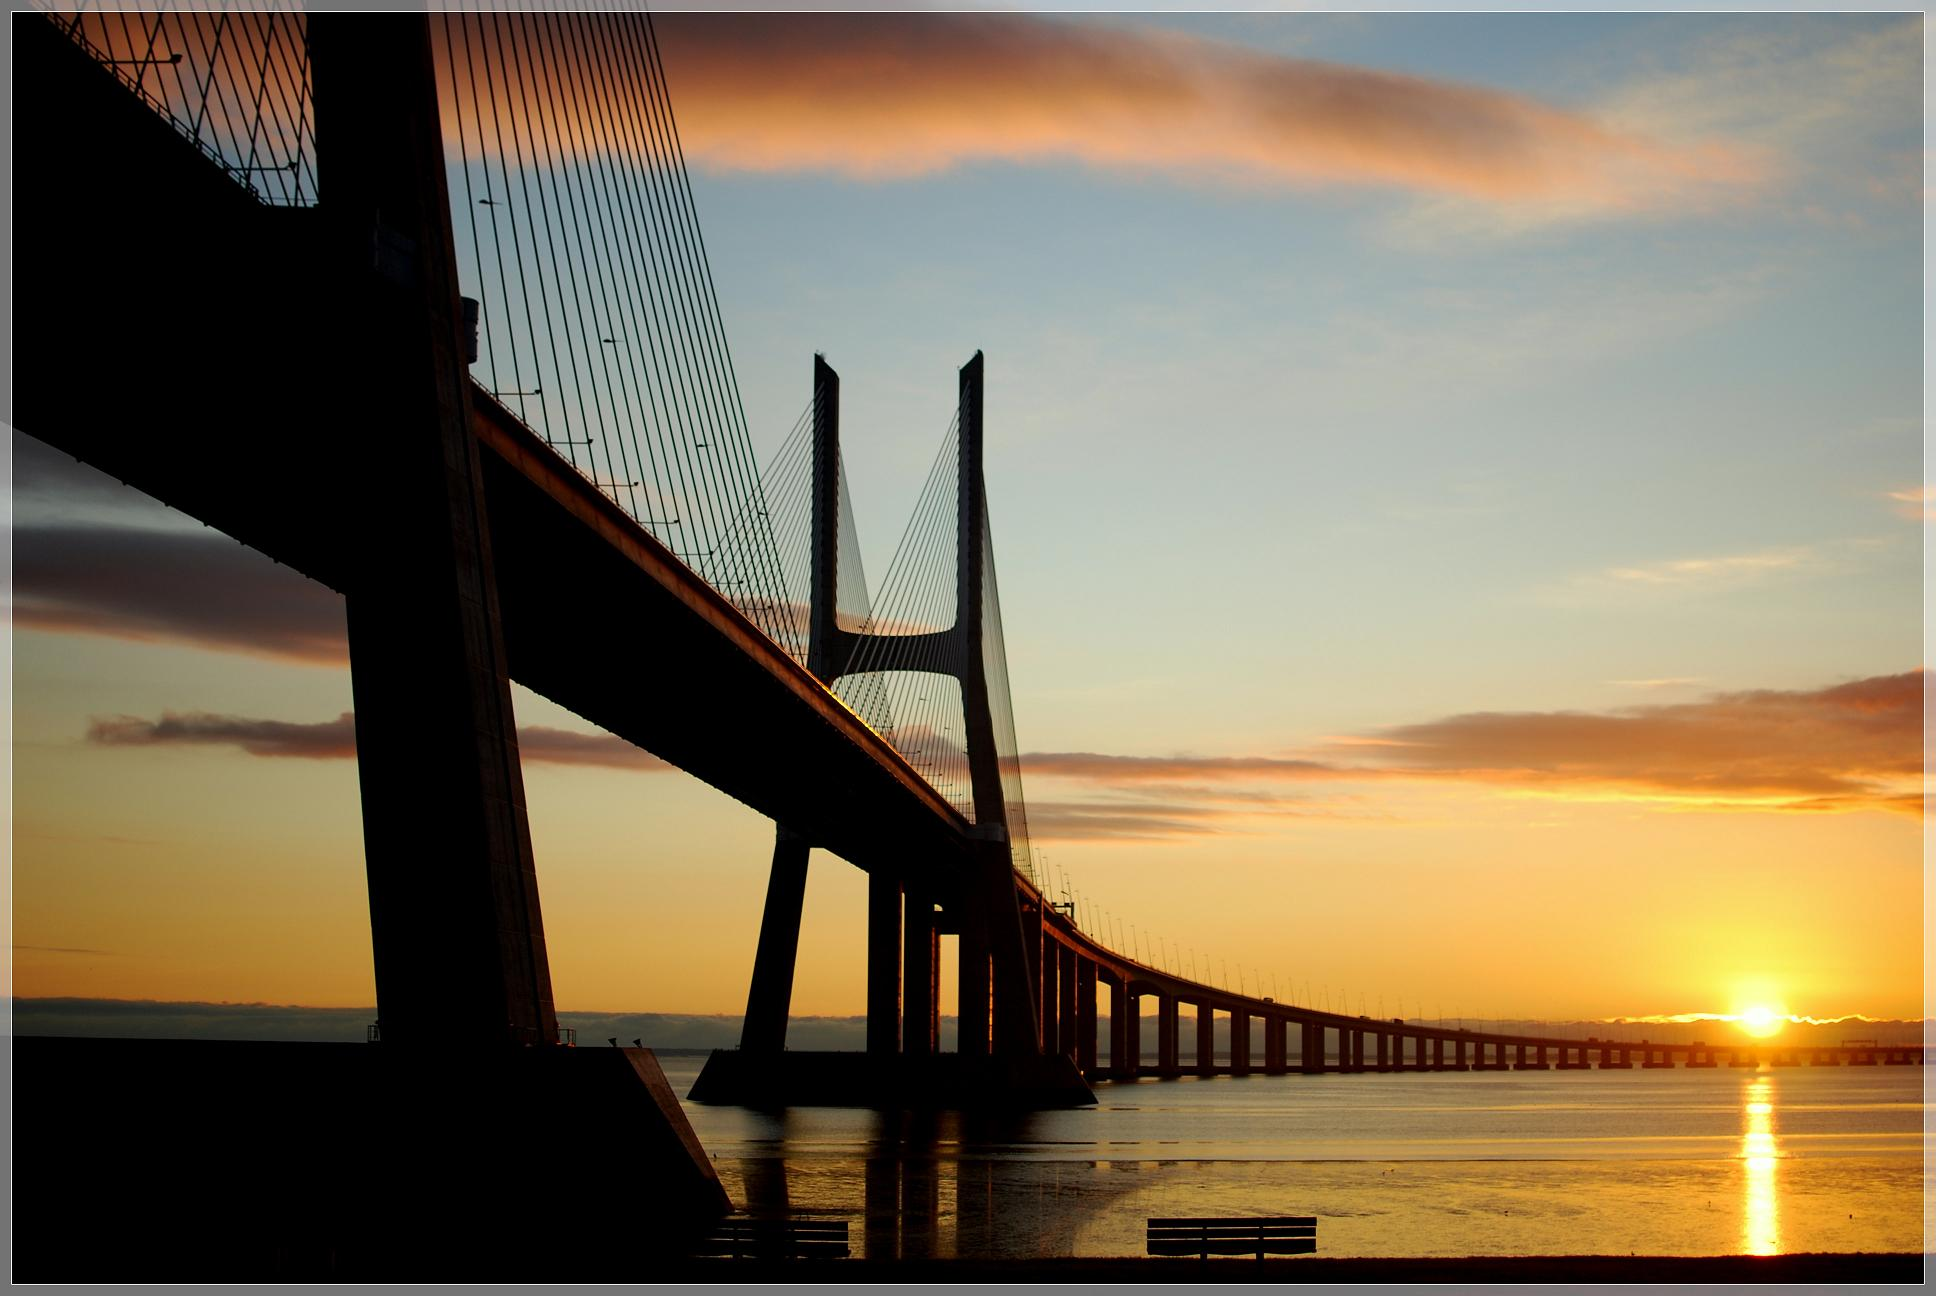 Vasco da Gama - The Longest Bridge in Europe